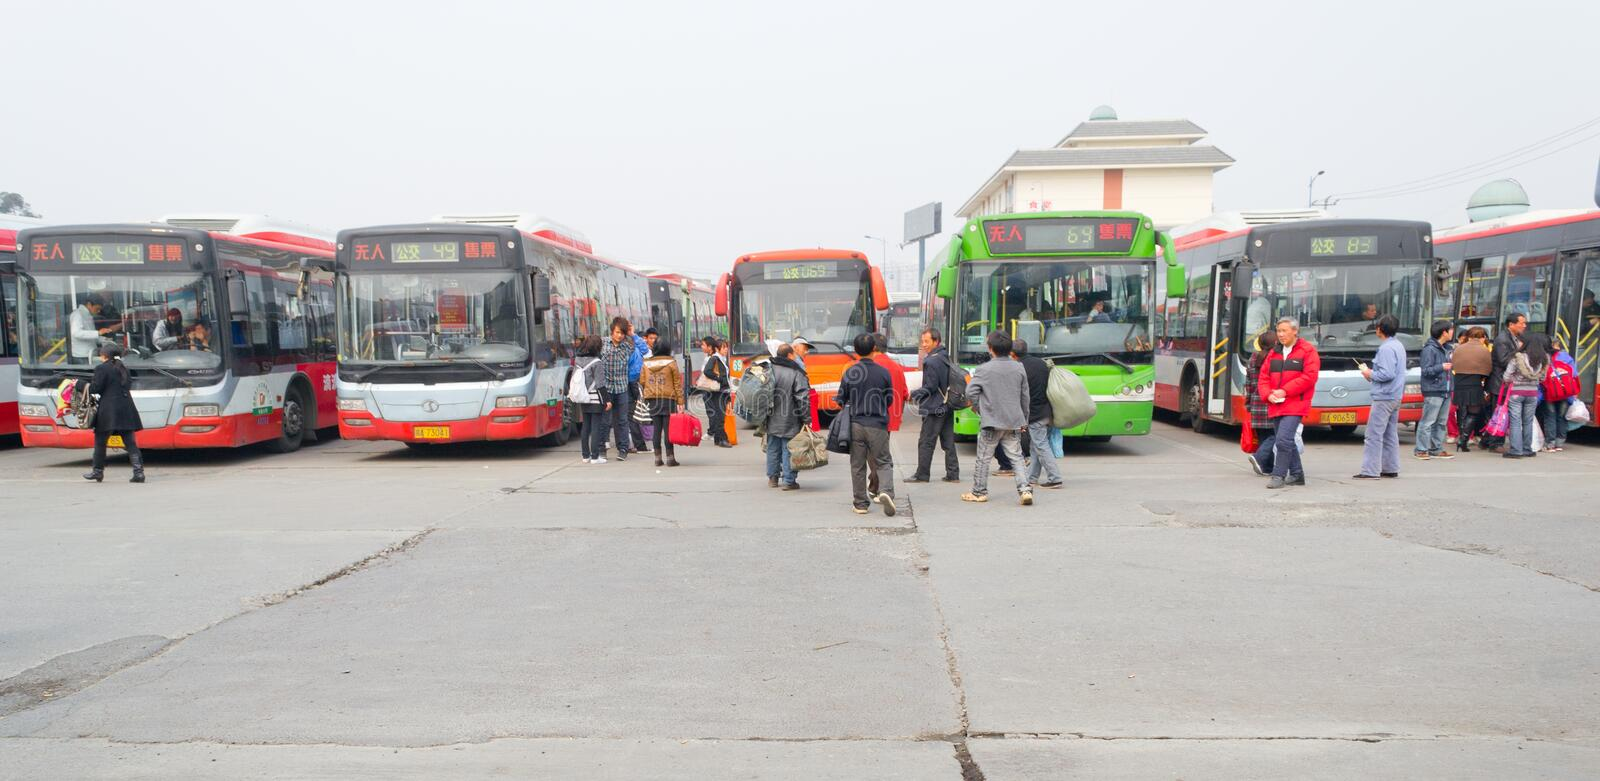 people in bus station